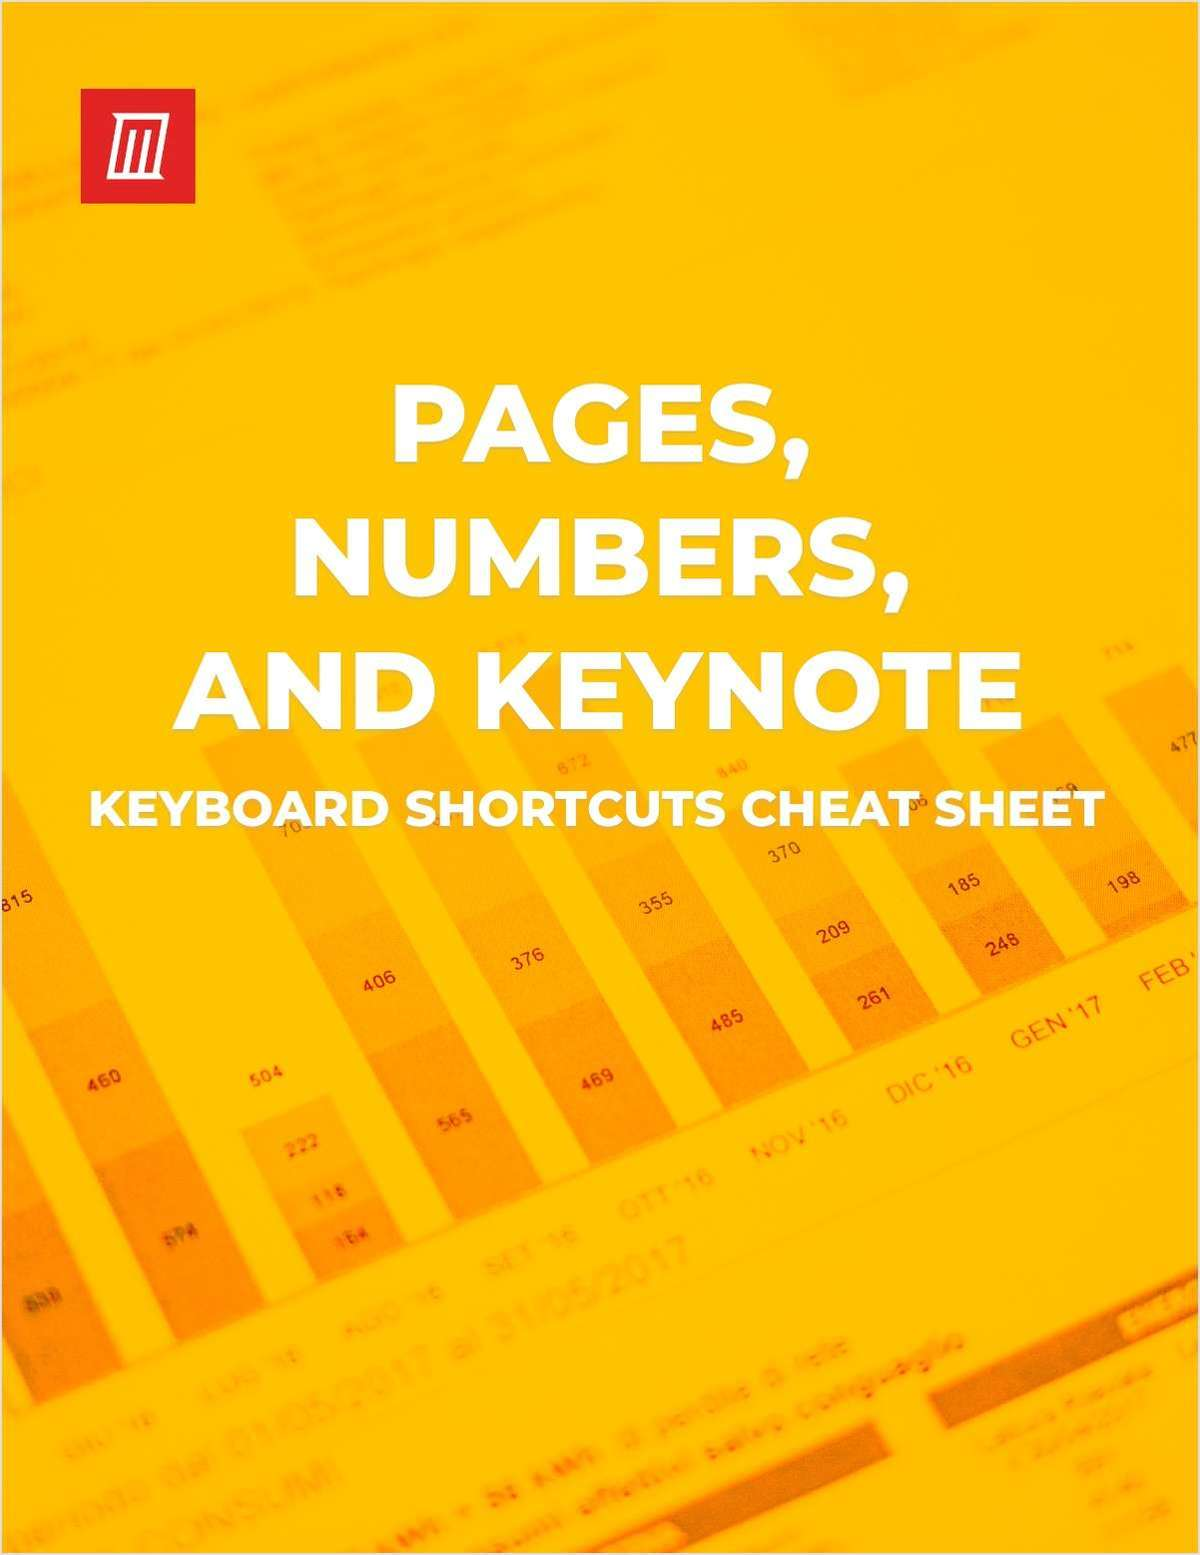 Keyboard Shortcuts for Pages, Numbers, and Keynote